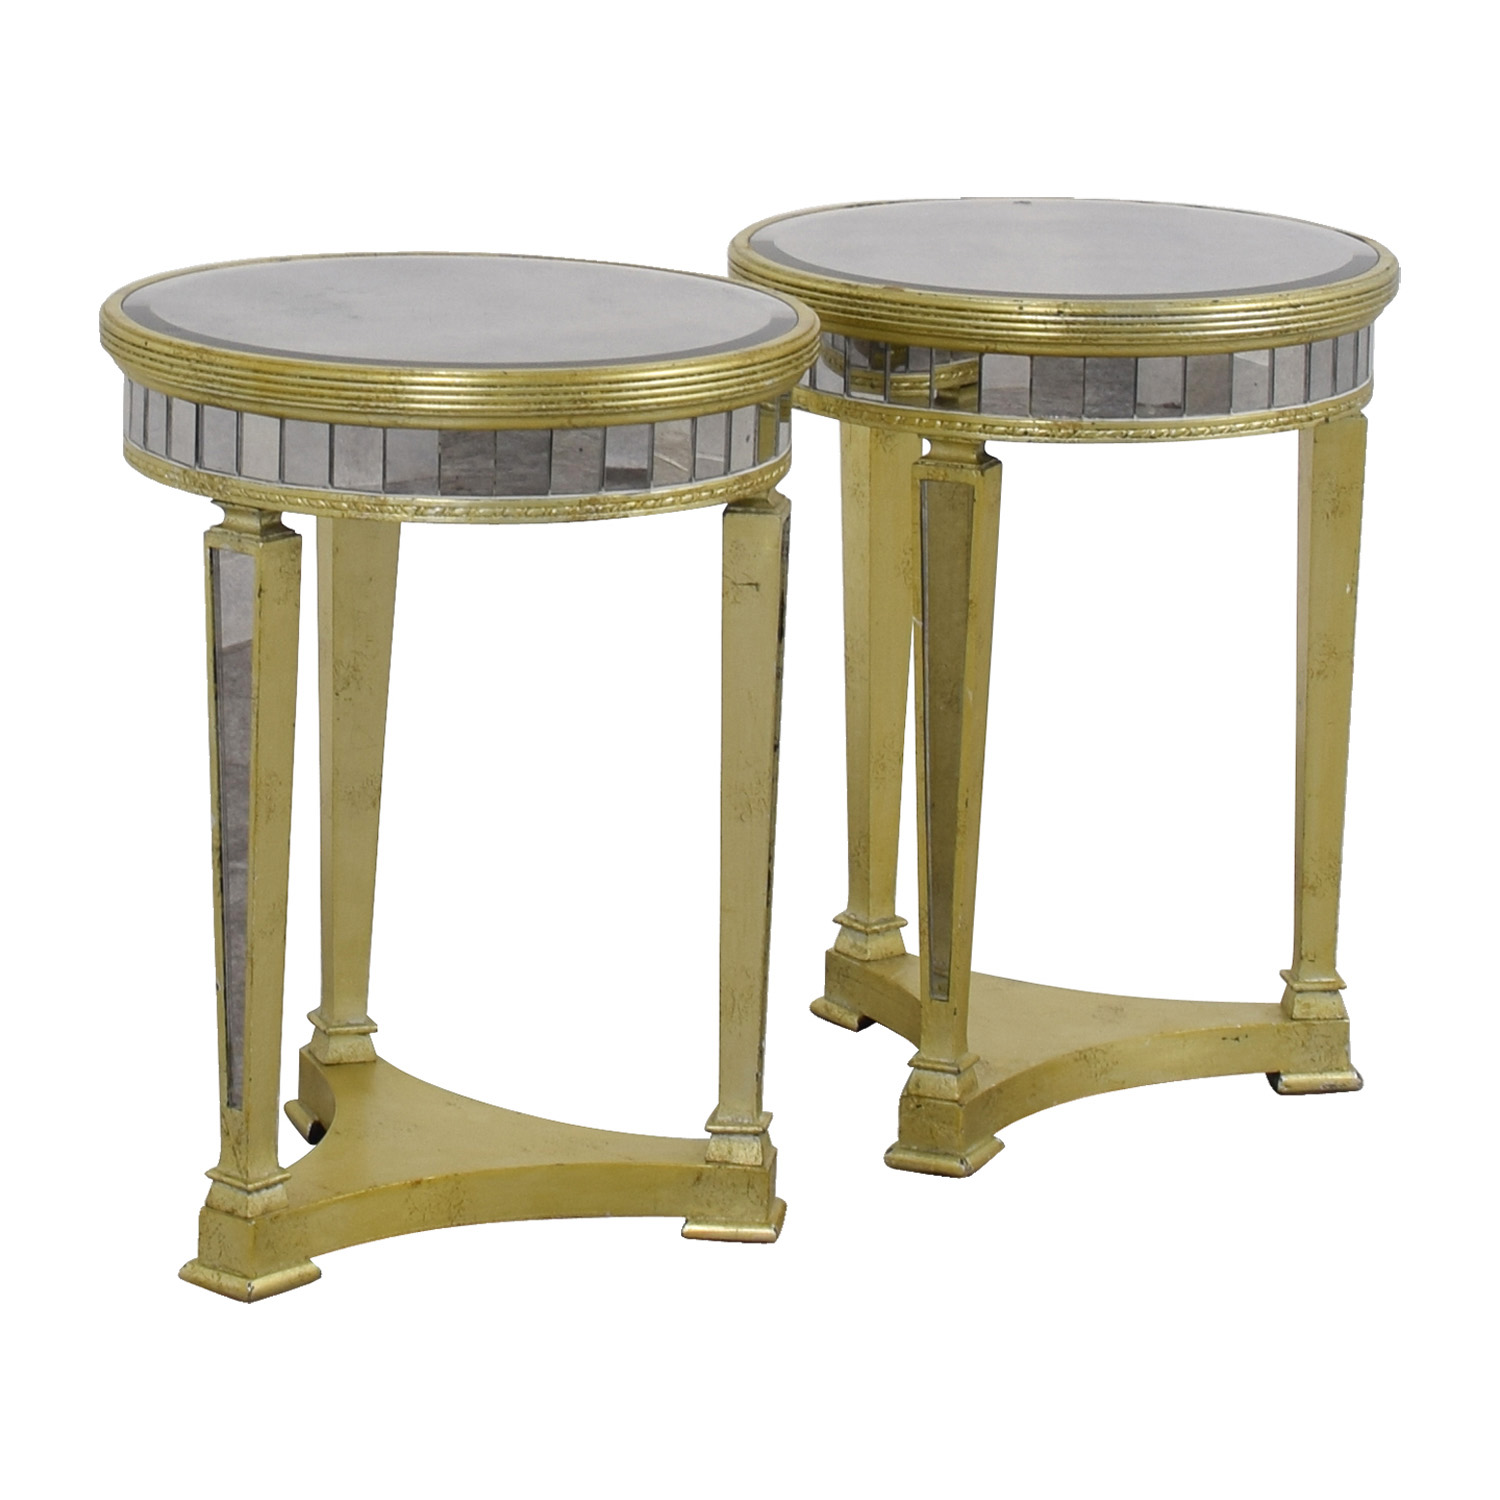 83 OFF Z Galleries Z Galleries Borghese Mirrored Side Tables Tables